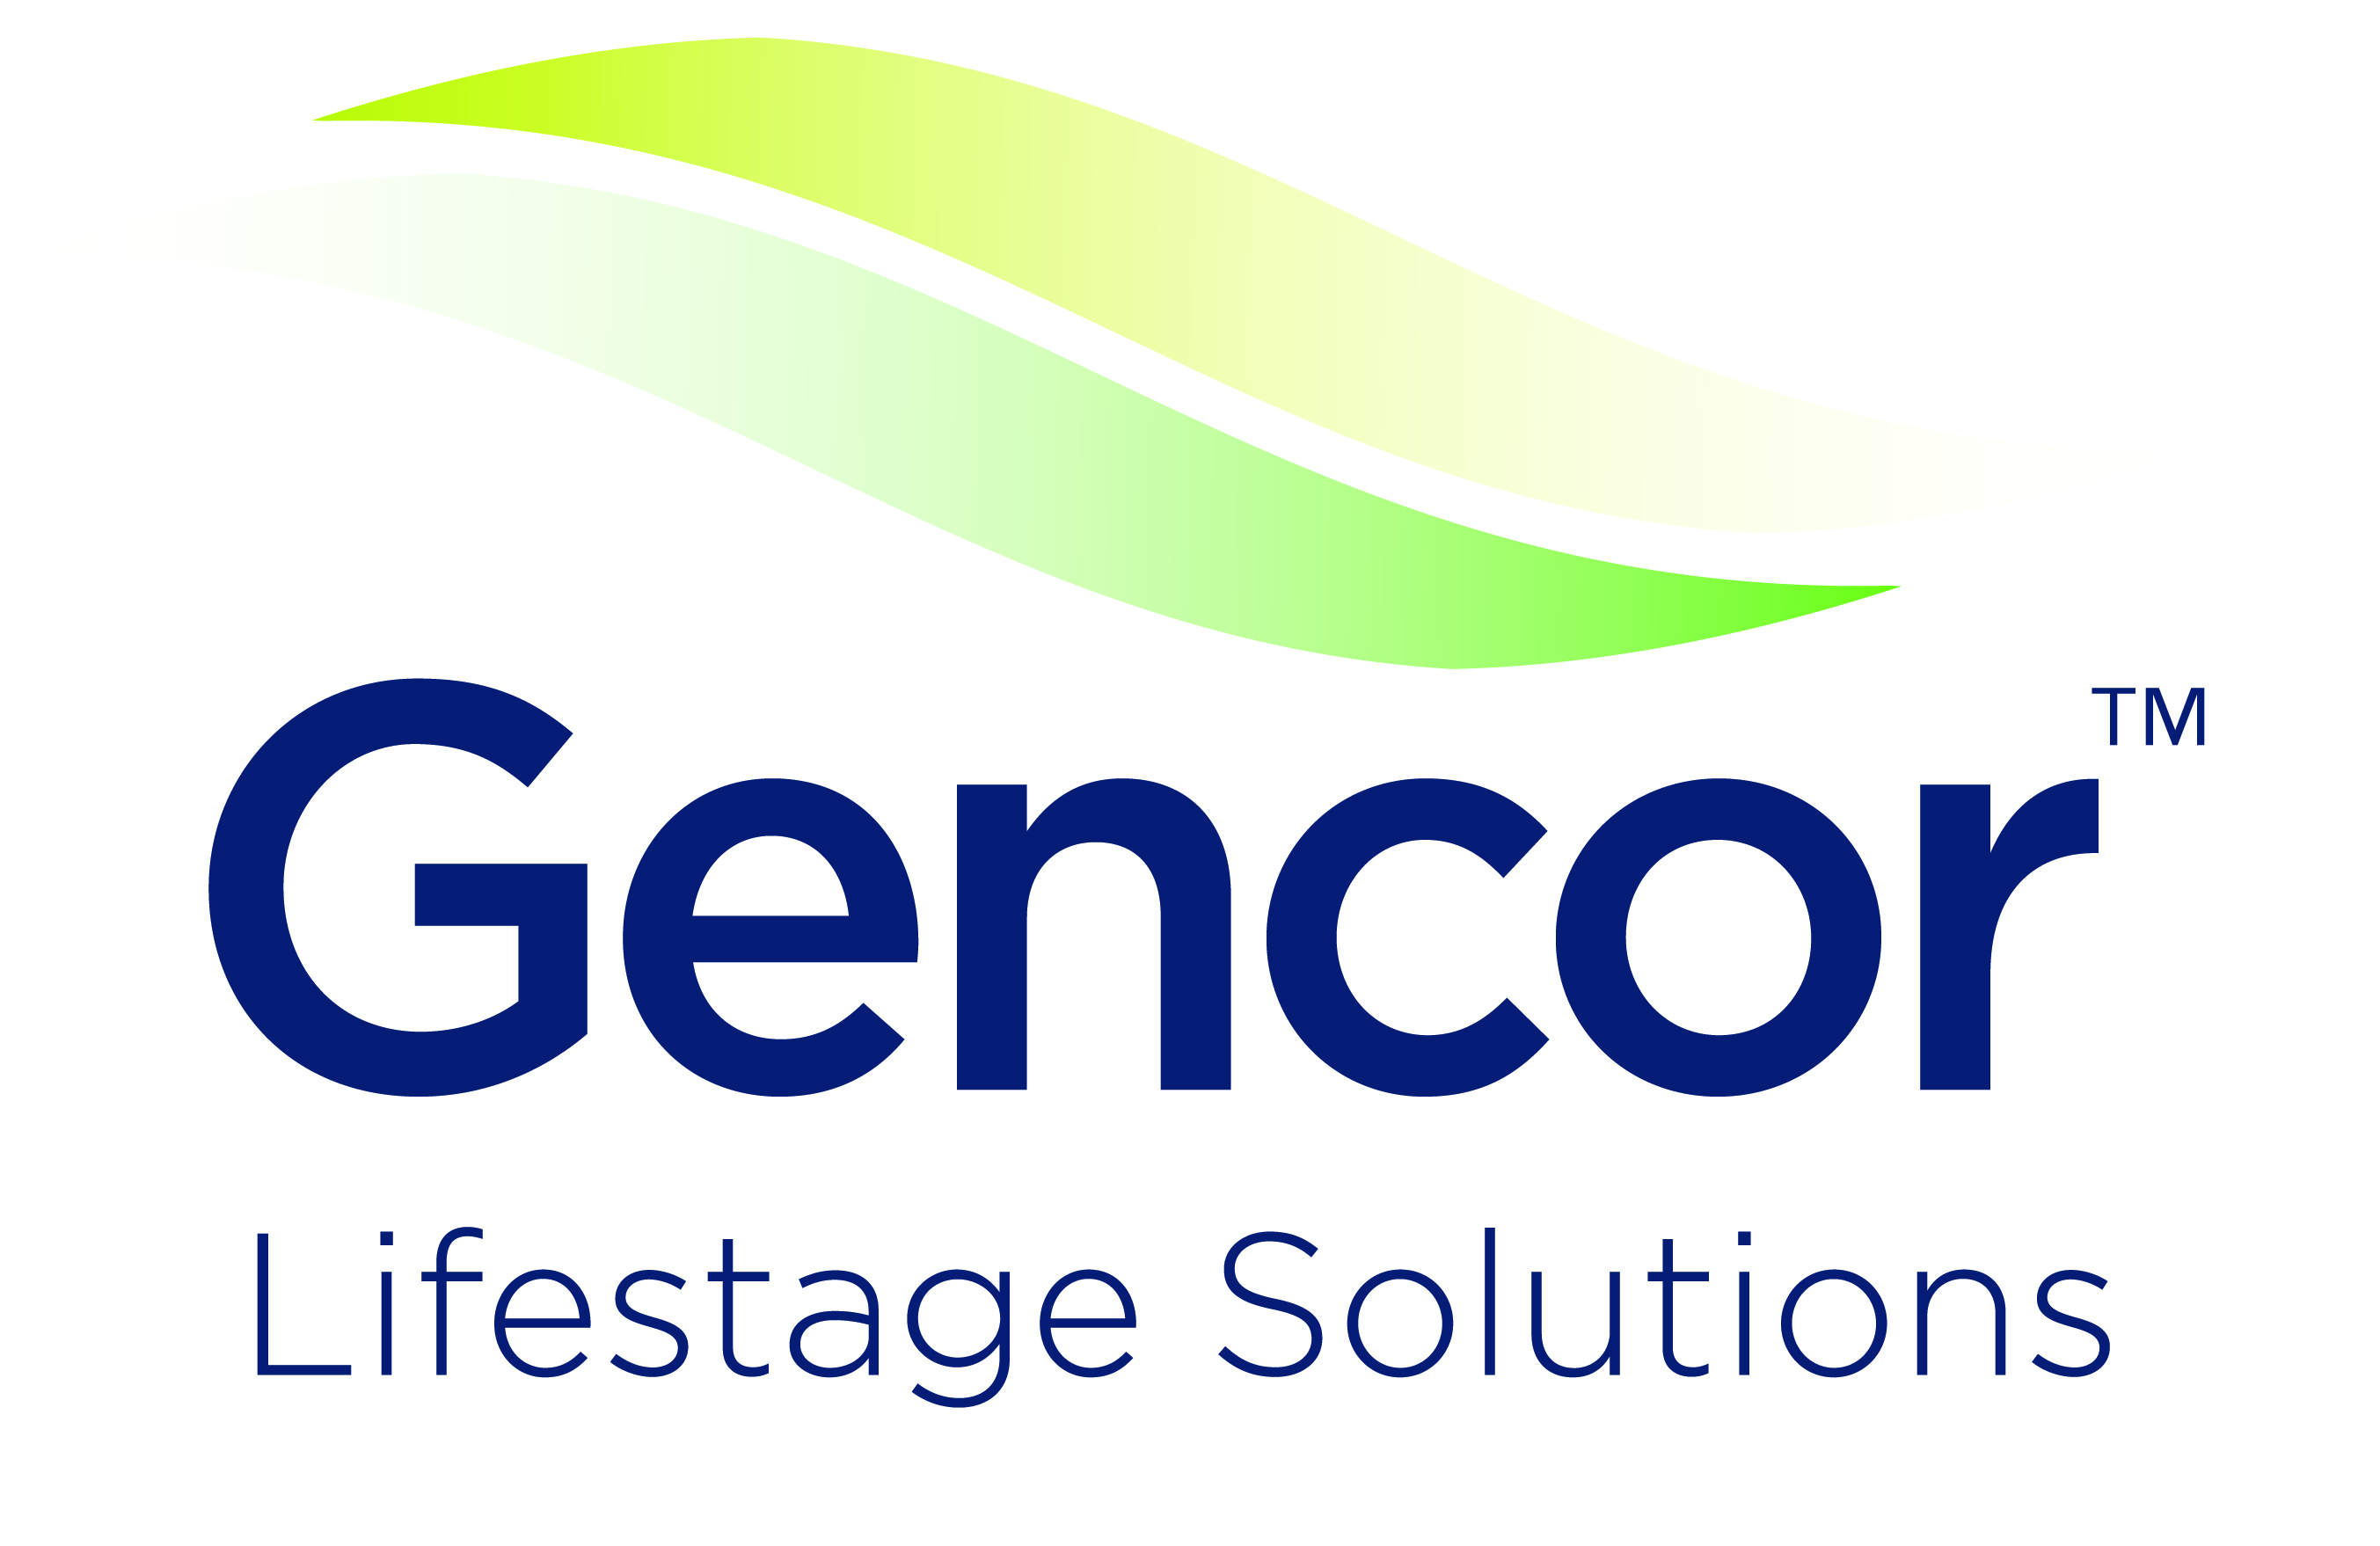 Cambridge Commodities partner ingredients Gencor logo